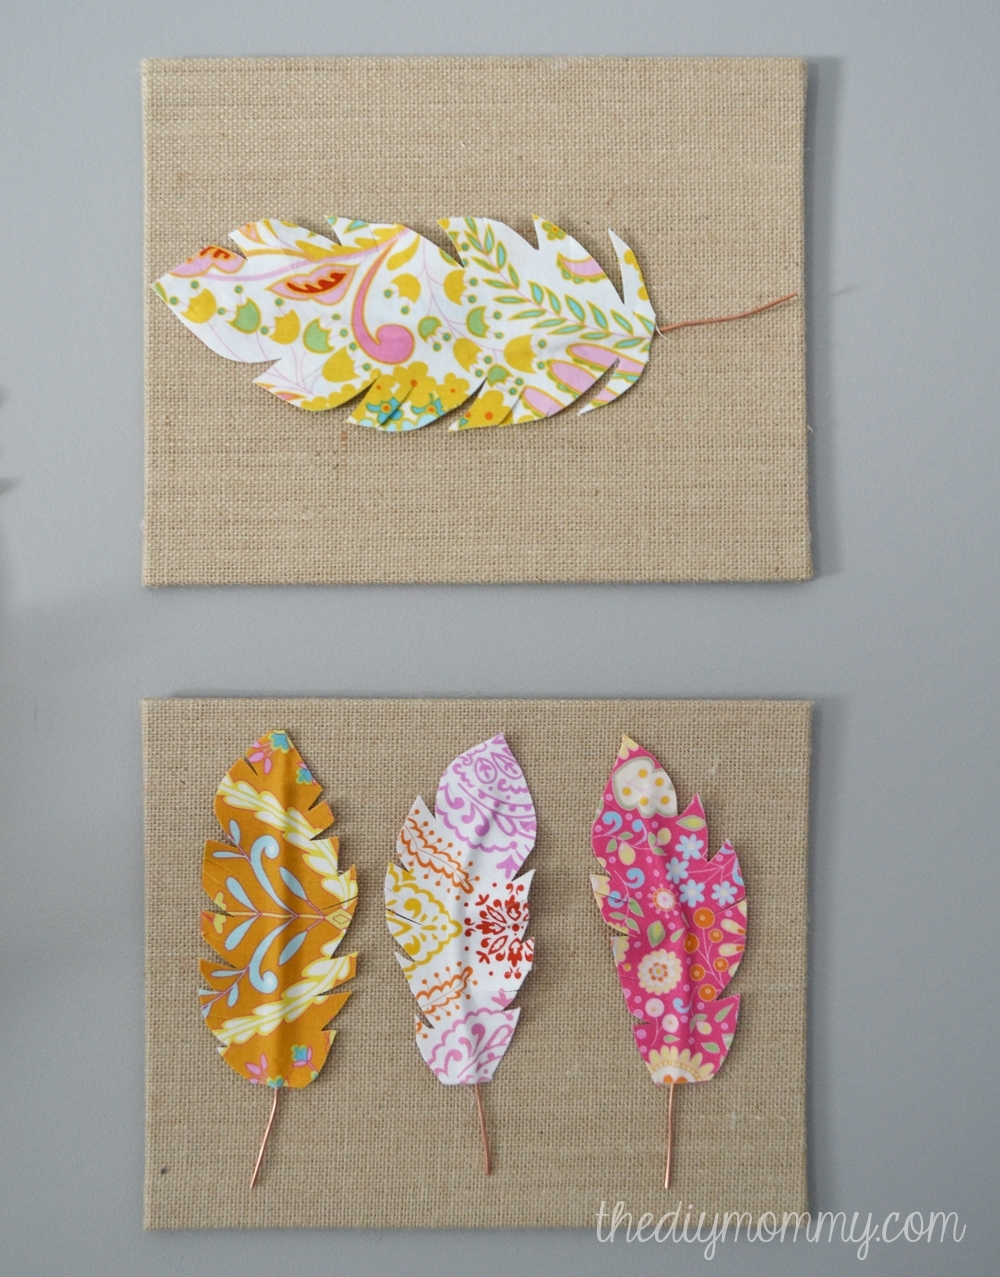 Make Fabric Feather Wall Art | The Diy Mommy Regarding Recent Diy Fabric Covered Wall Art (View 6 of 15)